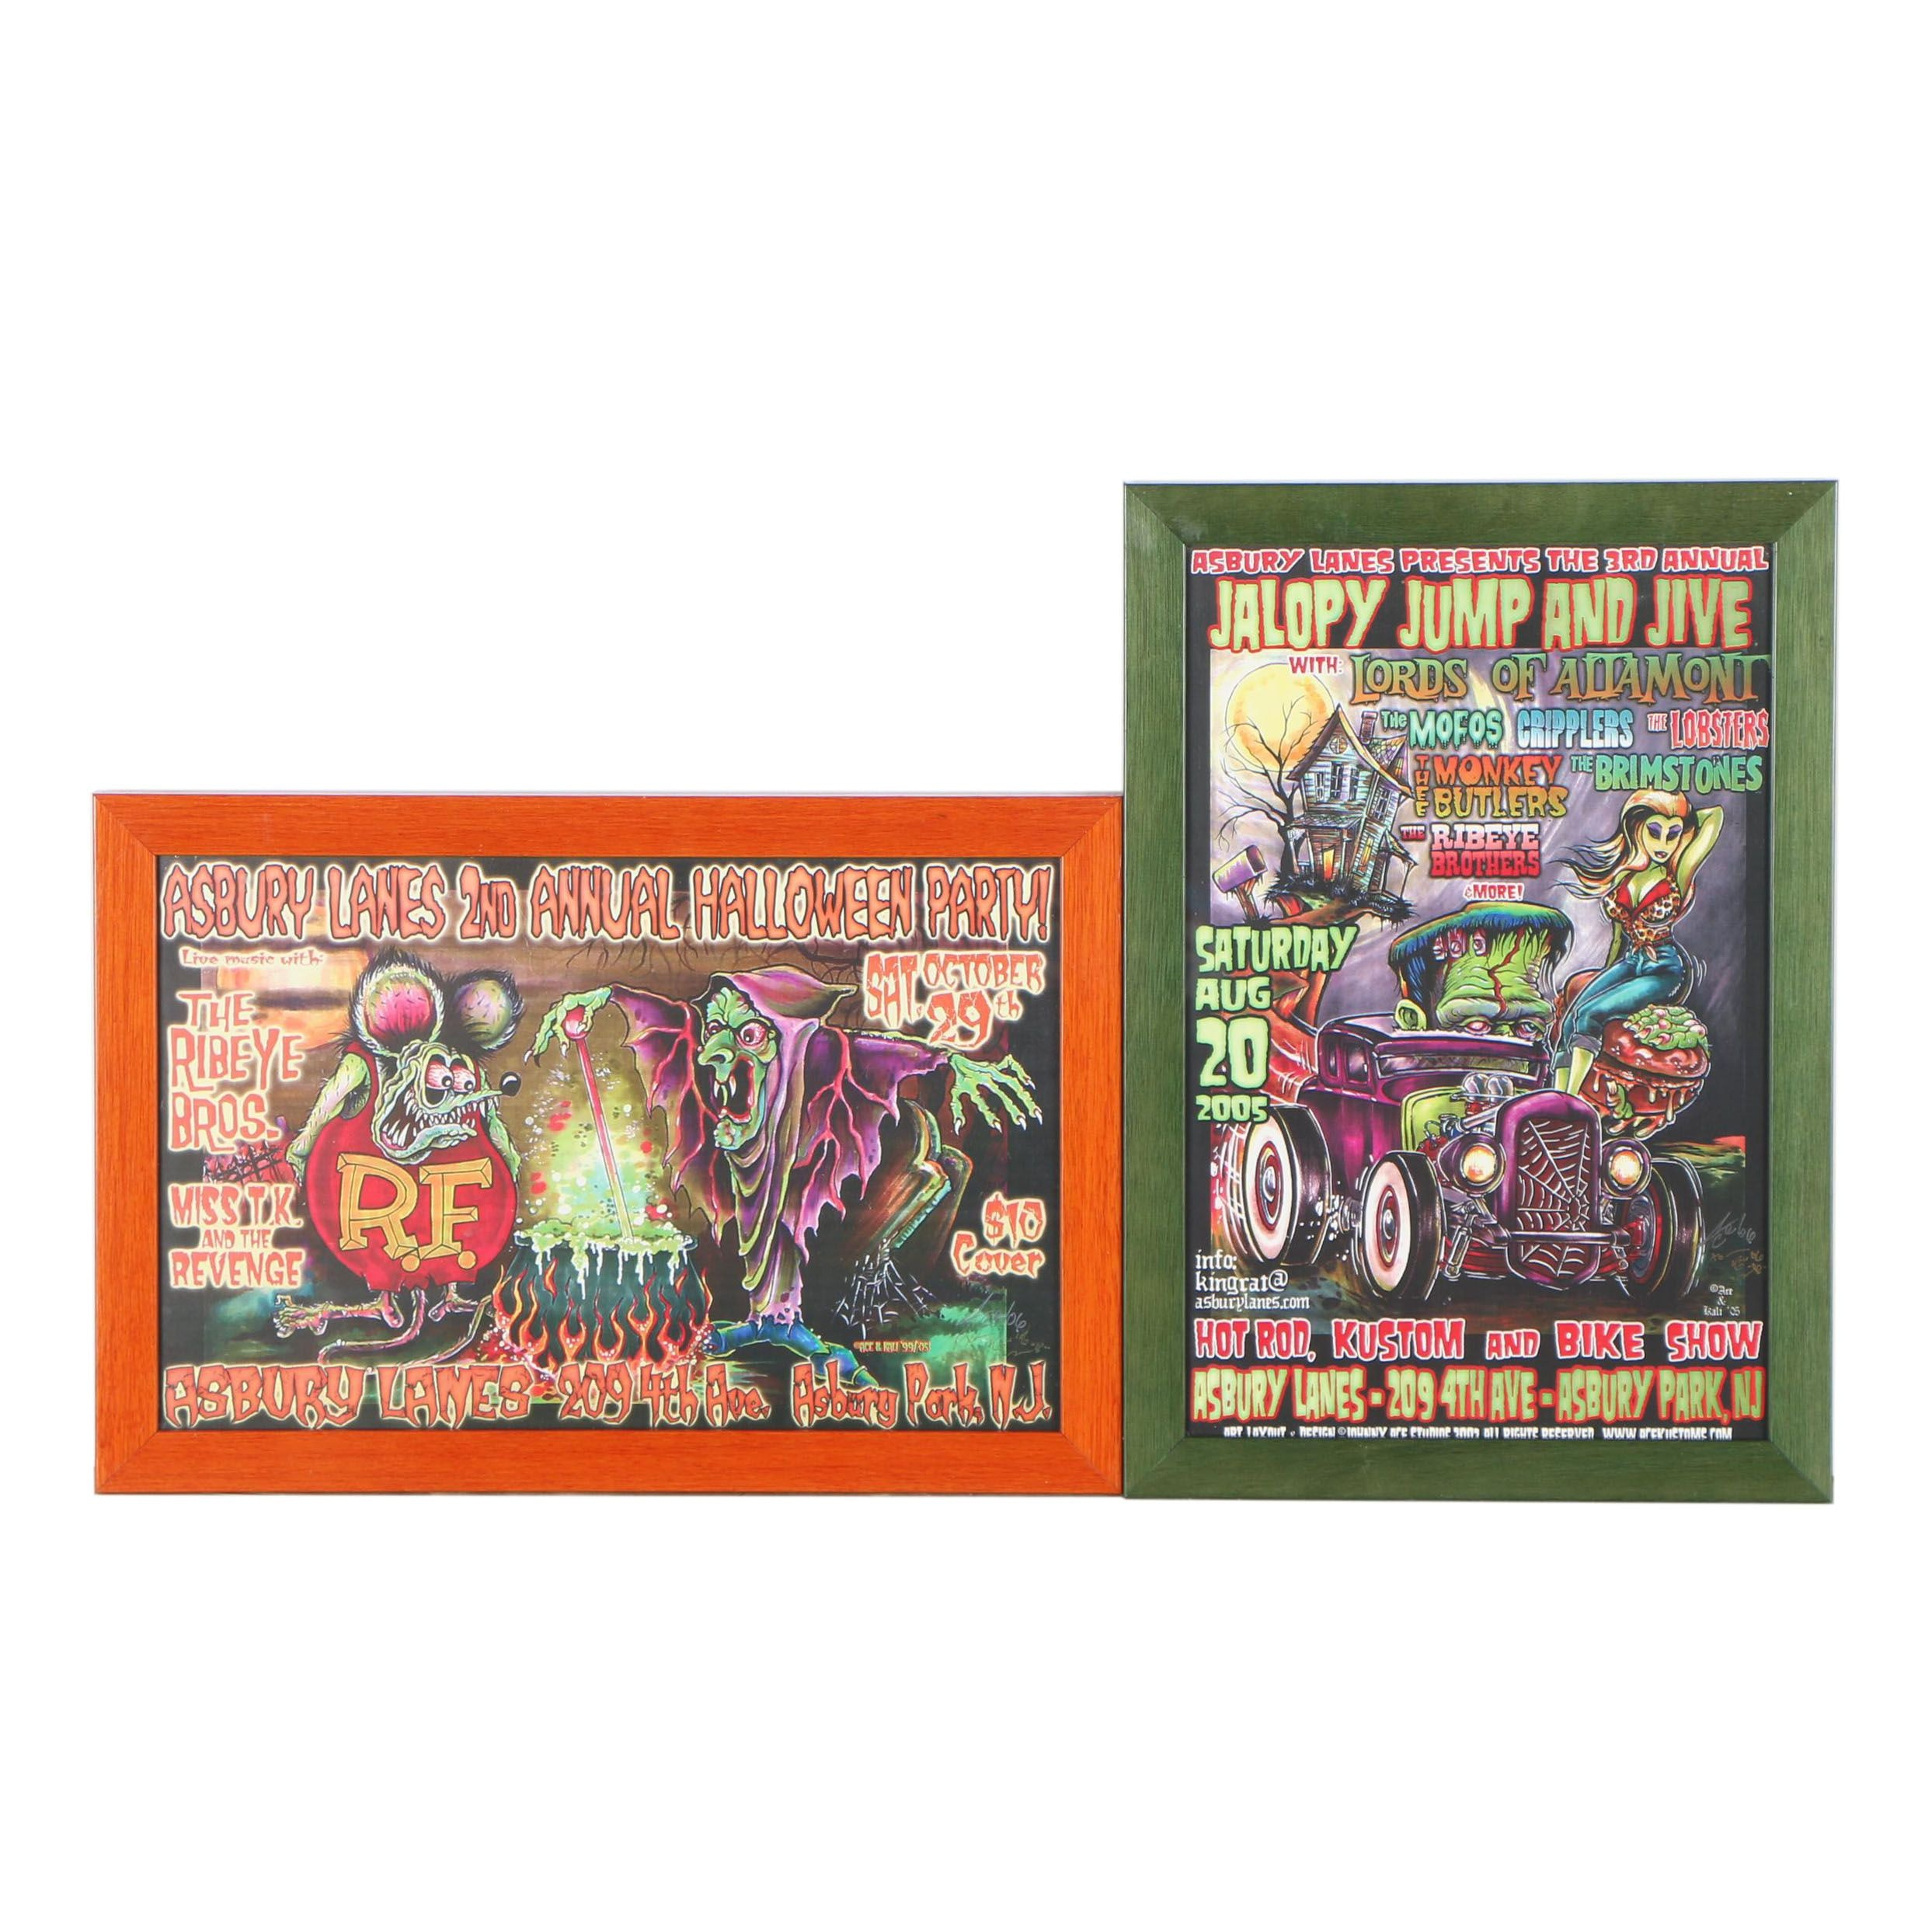 Reproduction Asbury Lane Giclée Posters after Johnny Ace and Kali Verra